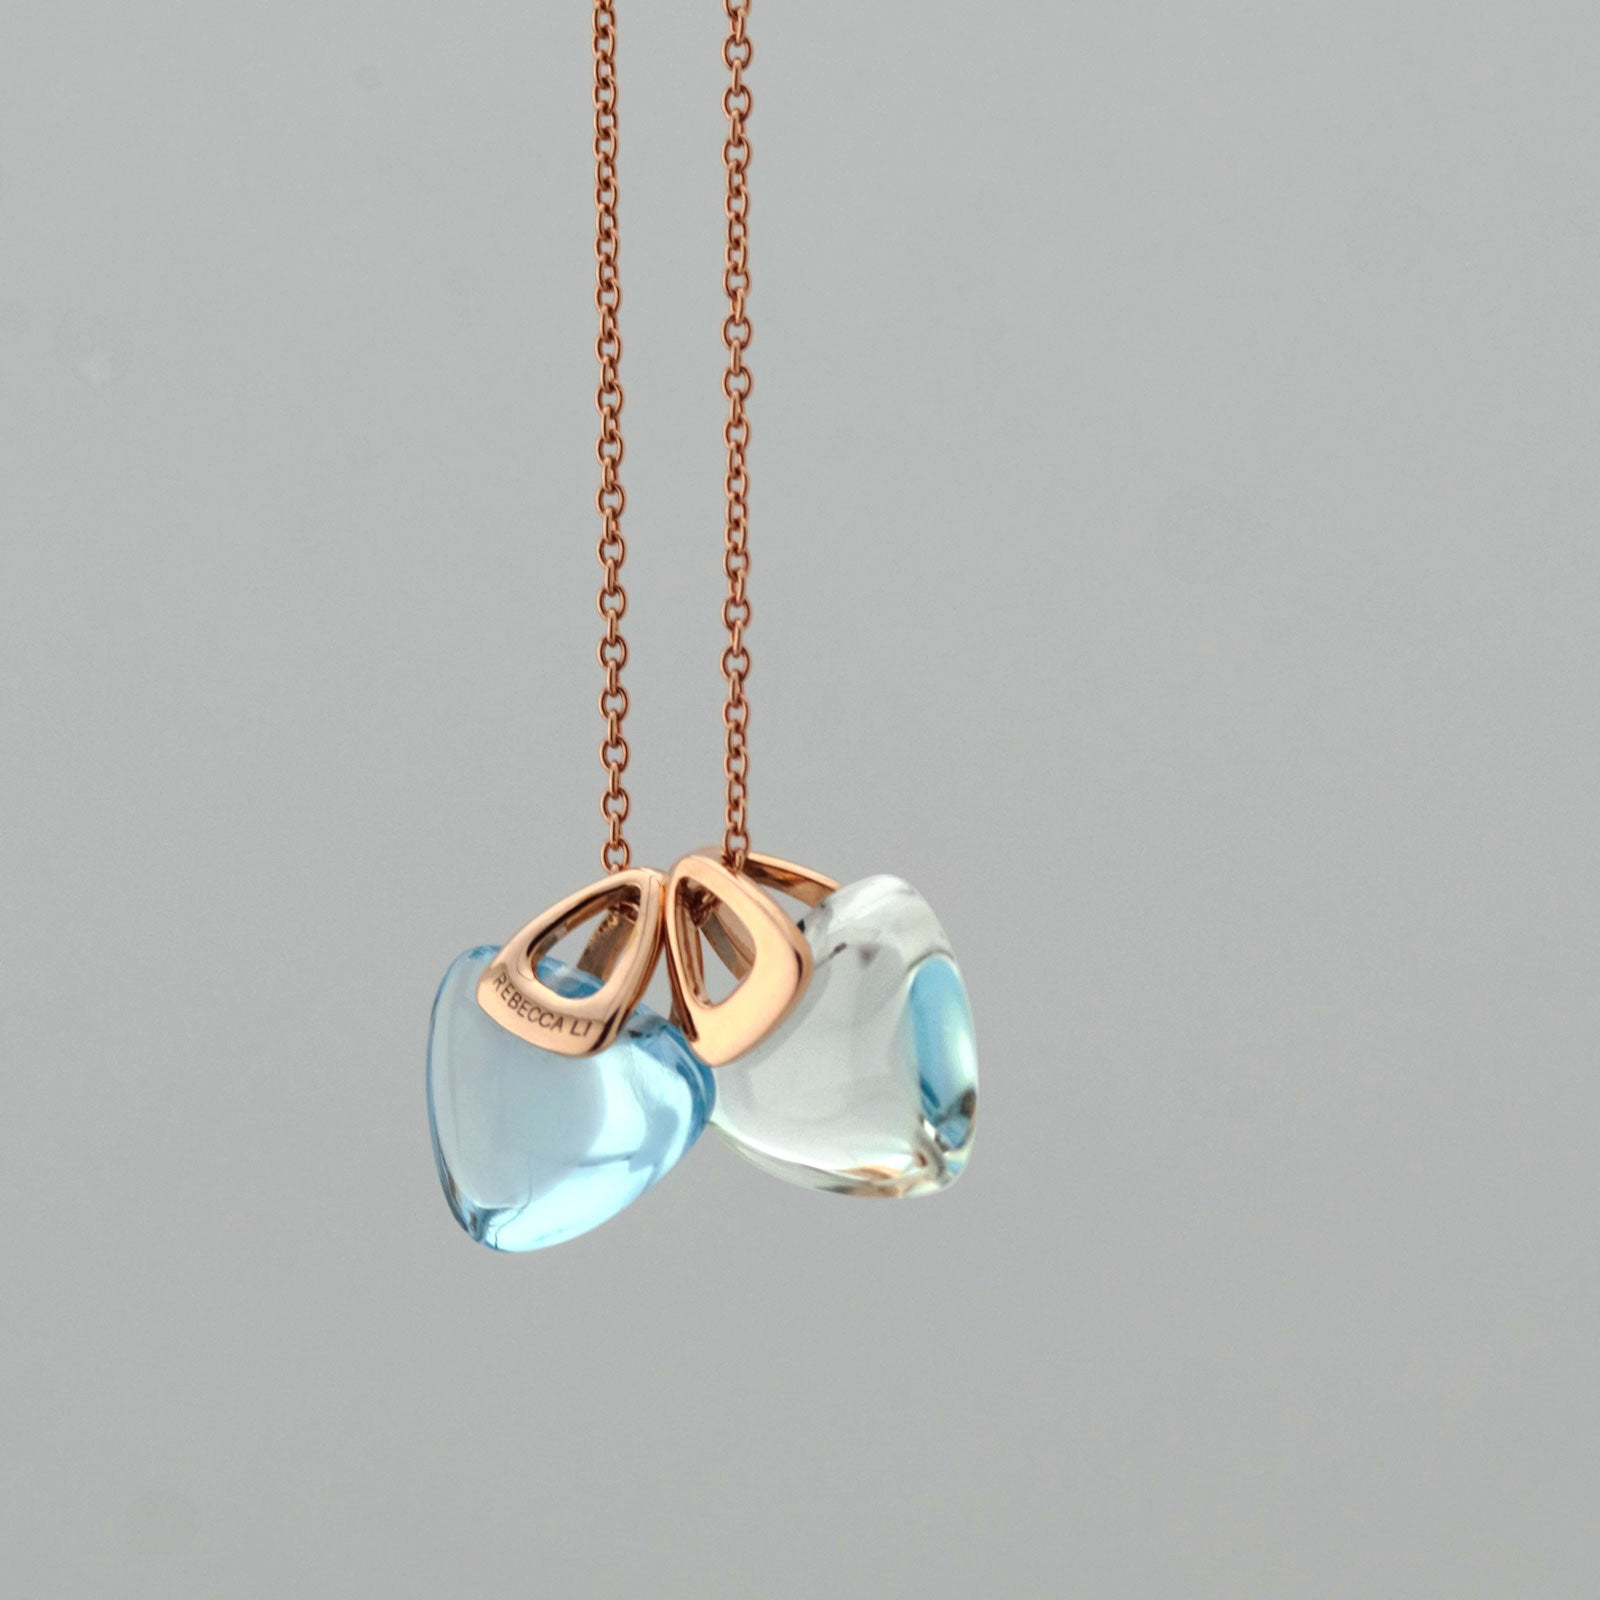 Natural rock crystal and blue topaz pendant, Rebecca Li